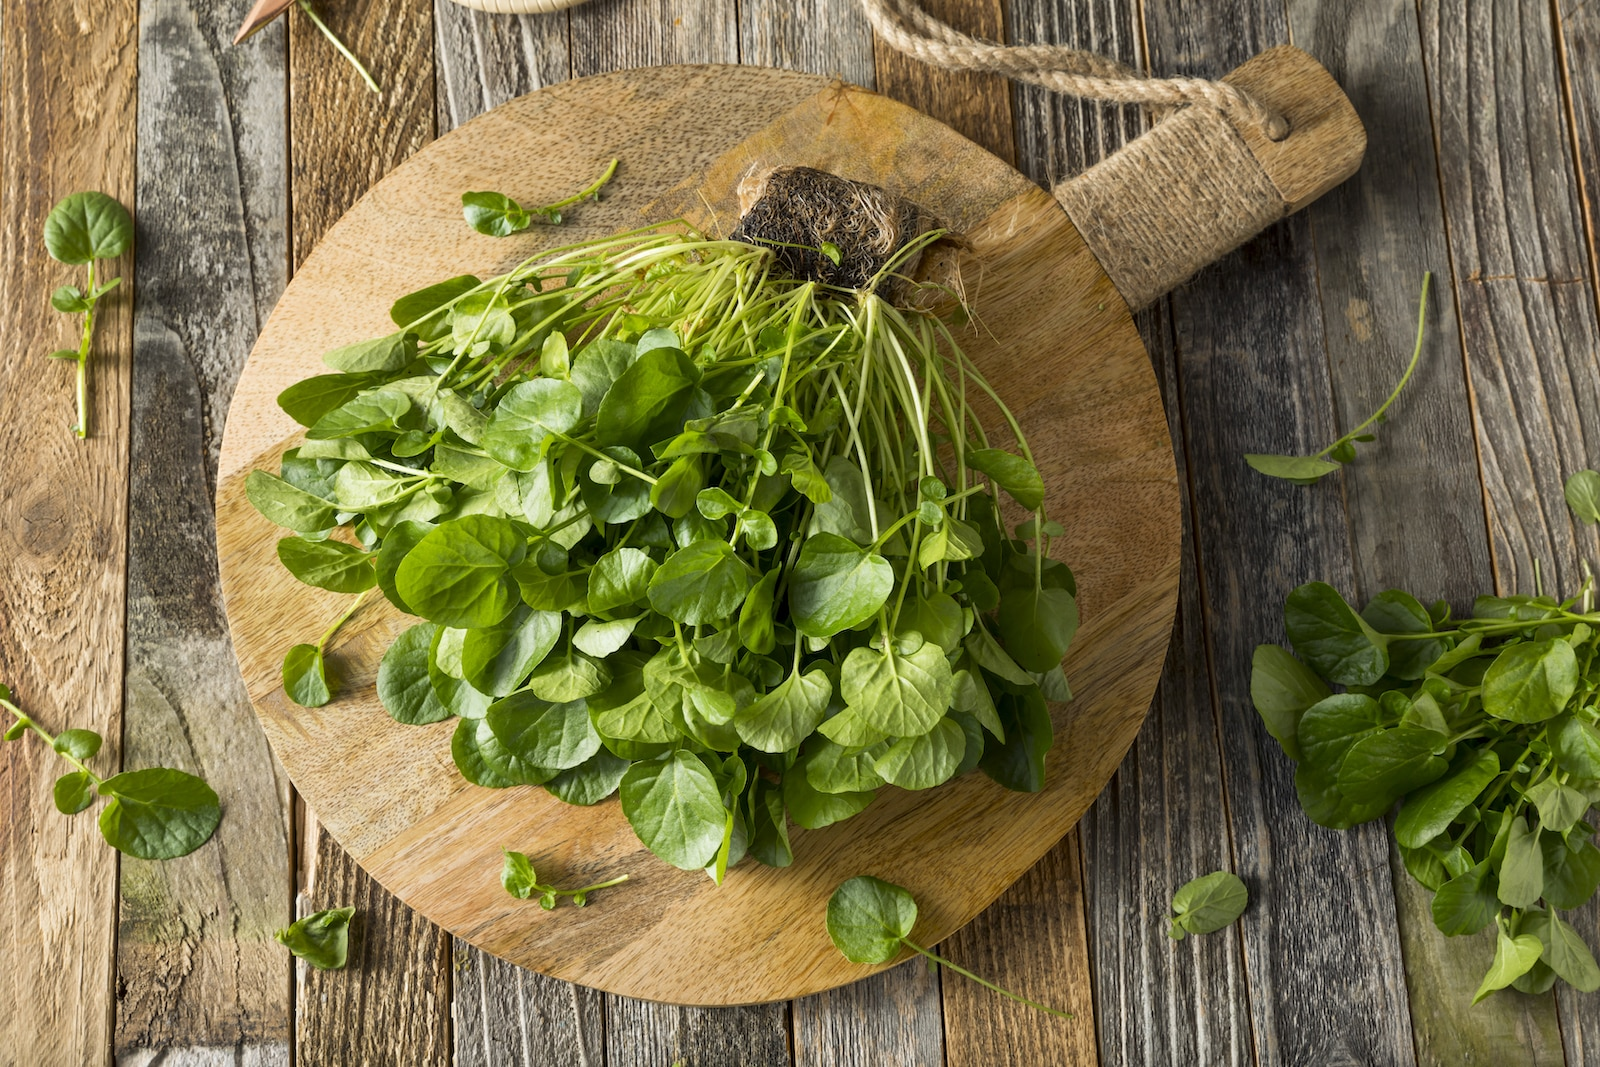 Watercress: The Original Leafy Green